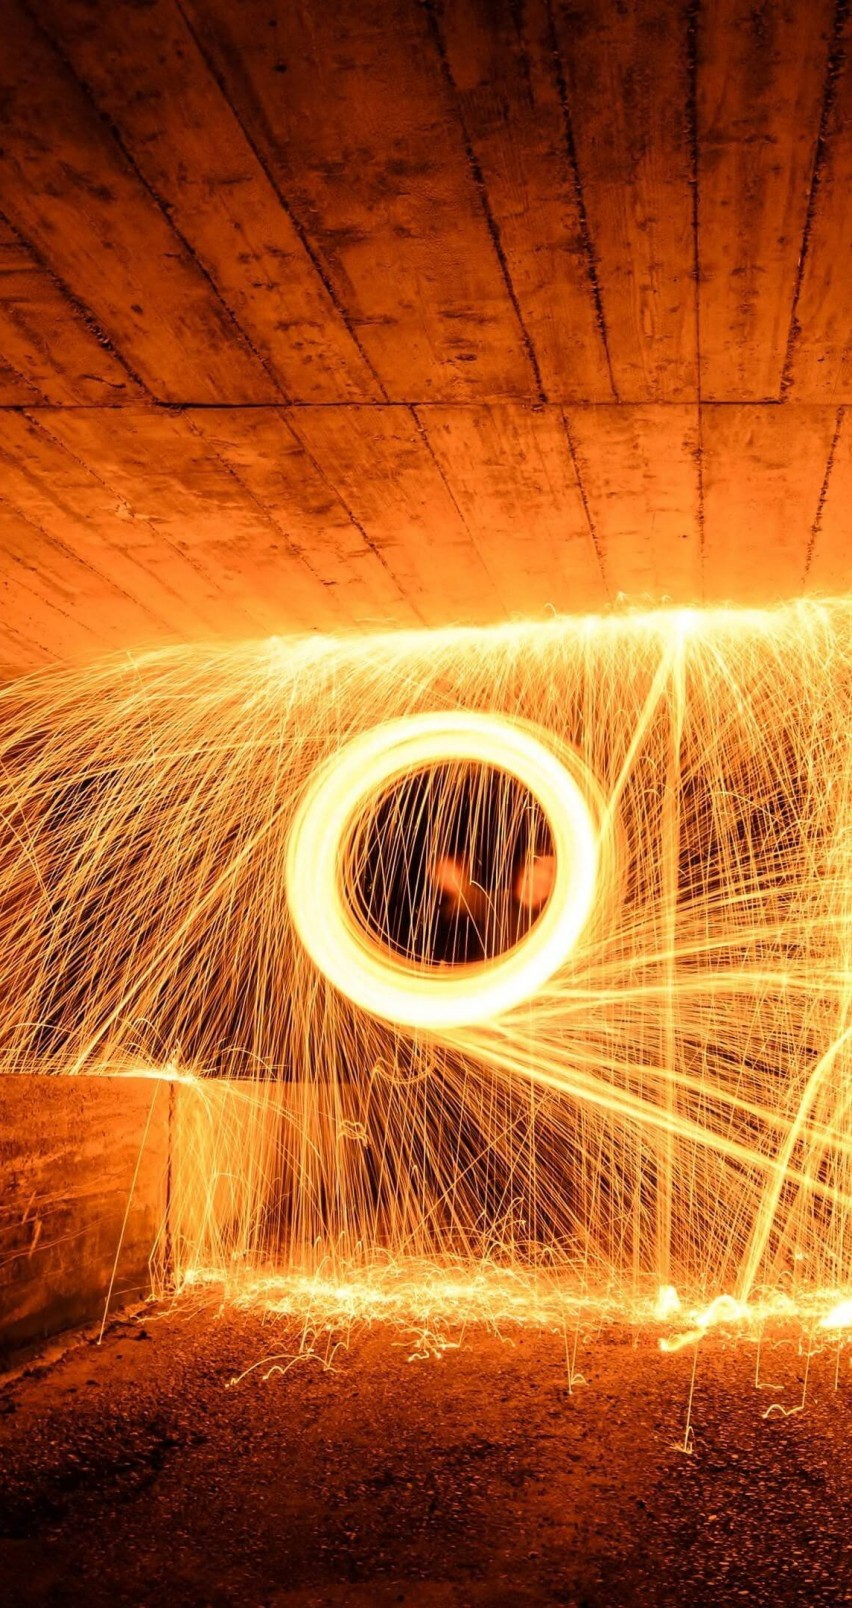 Wire Wool Long Exposure Wallpaper for Apple iPhone 6 / 6s